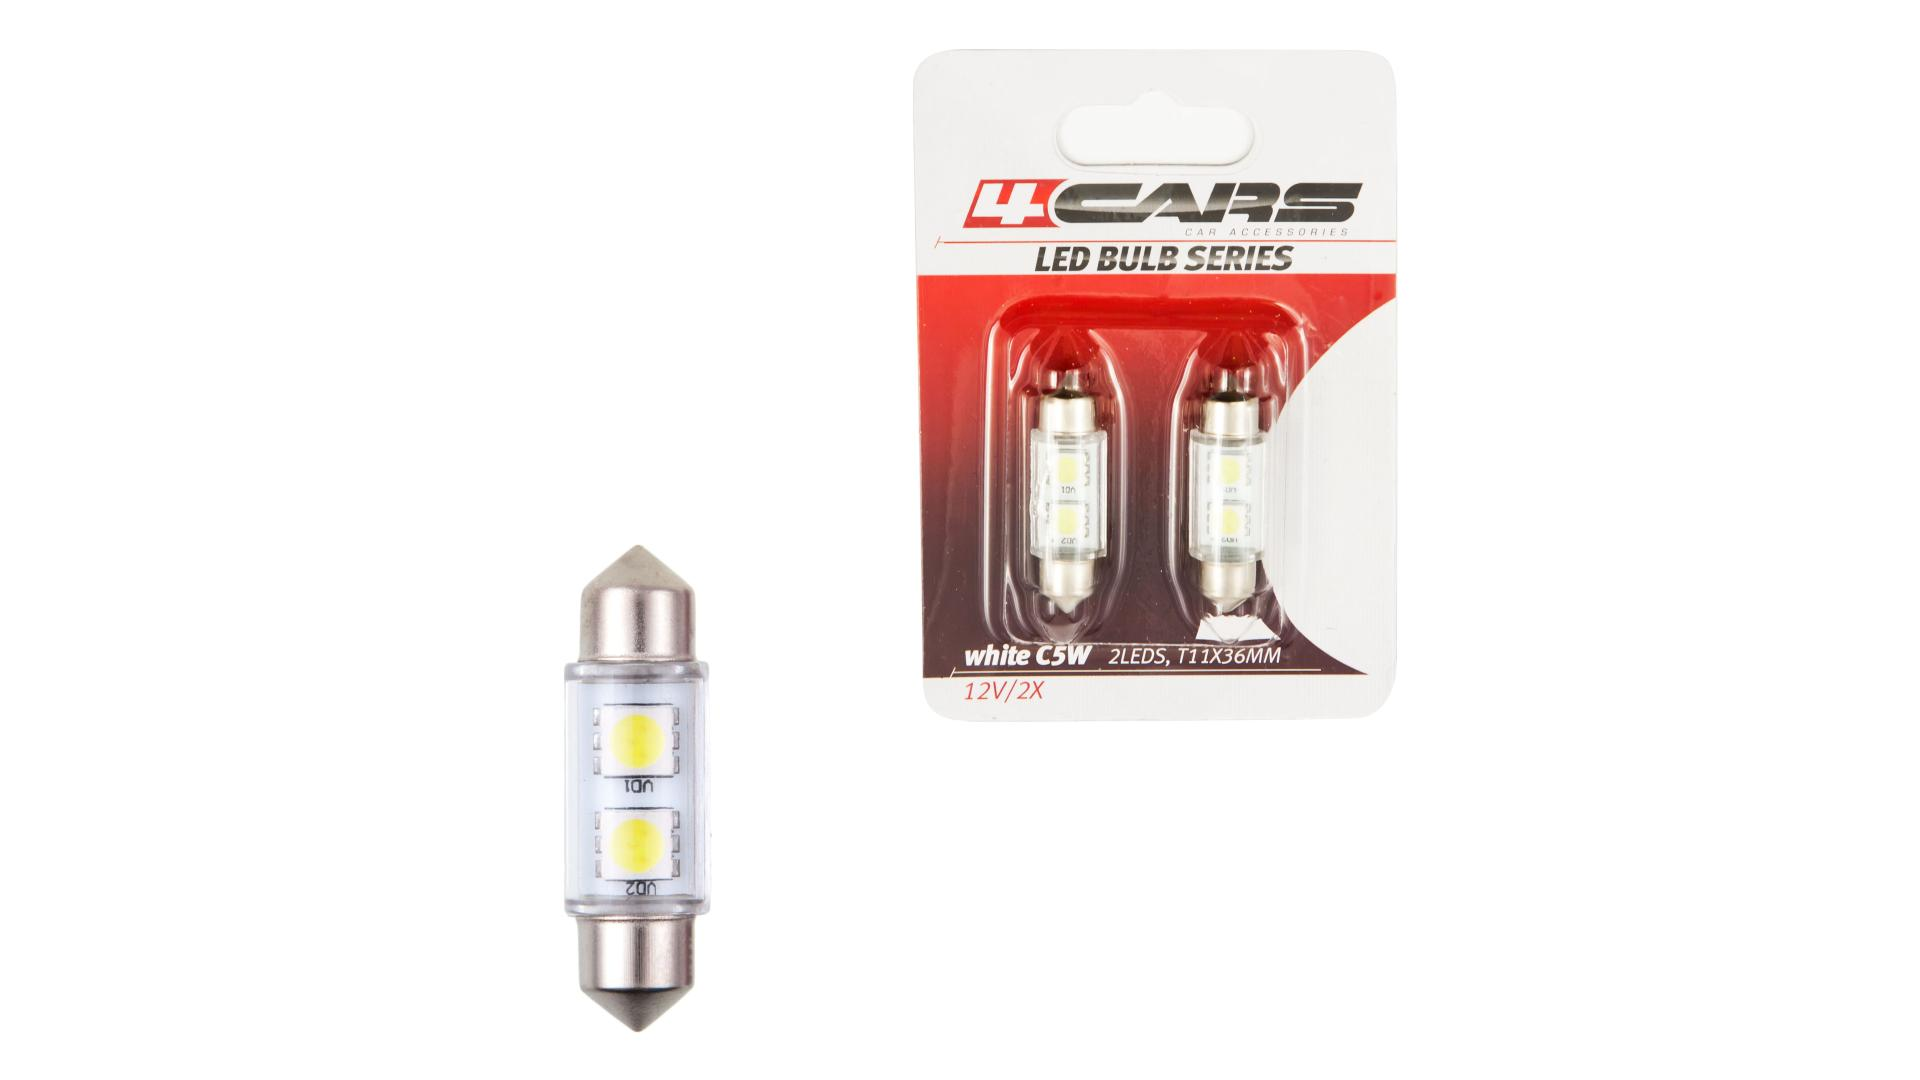 4CARS LED ŽIAROVKA 2LED 12V FESTOON SMD T11X31MM,36MM